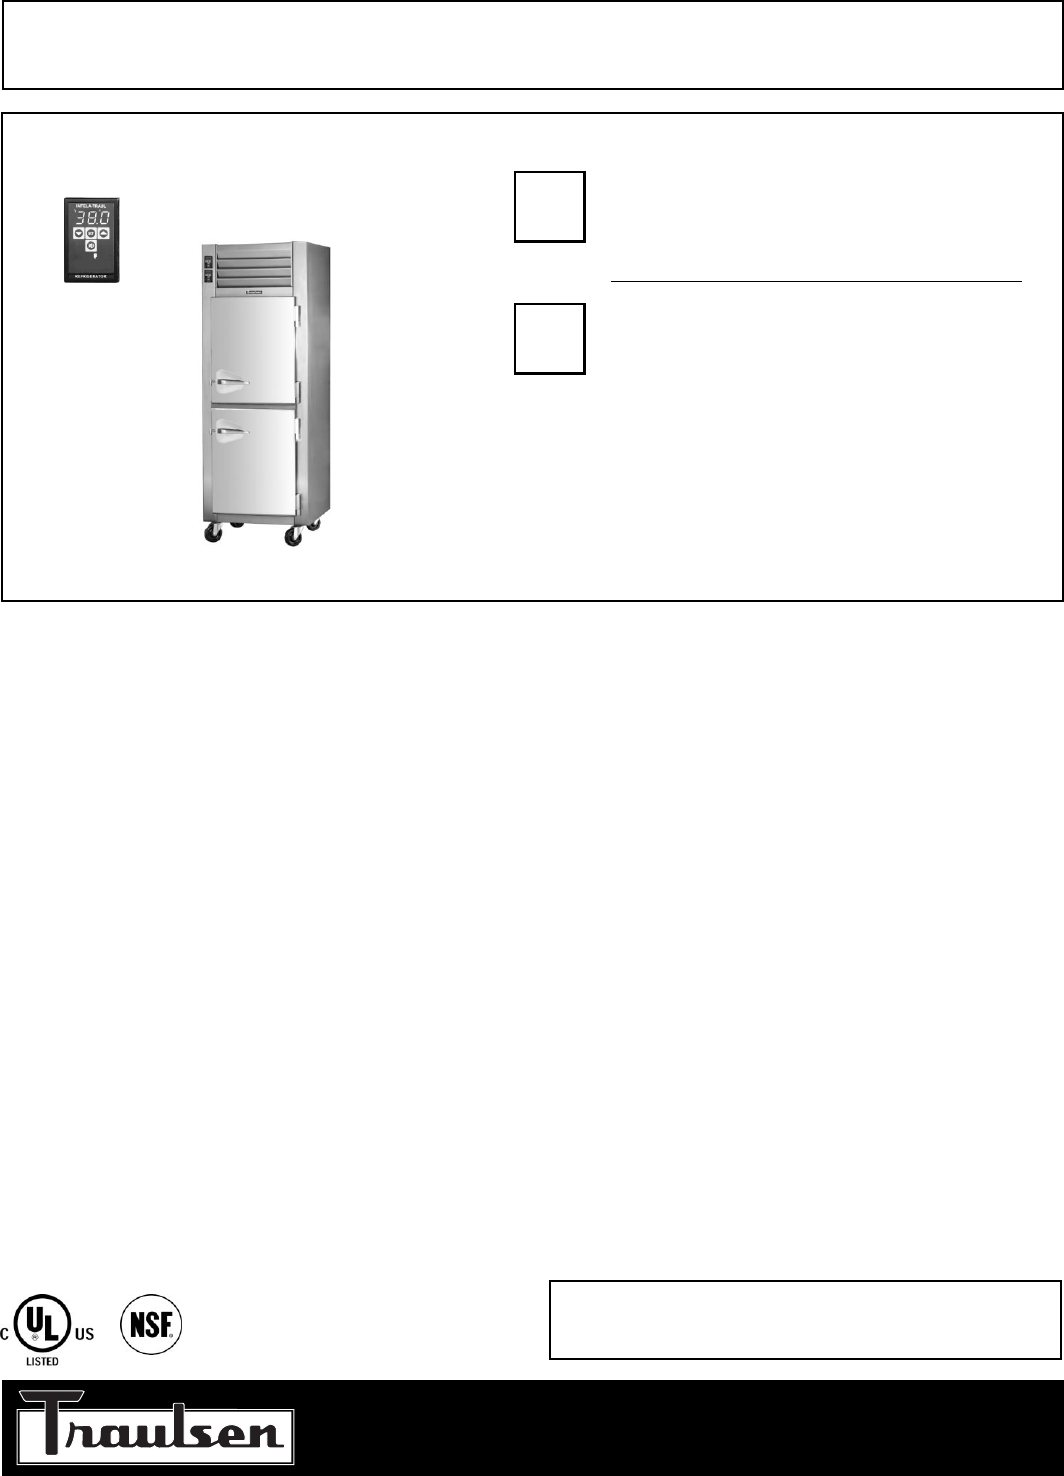 Traulsen refrigerator rdt132wut hhs user guide manualsonline standard product features cheapraybanclubmaster Image collections